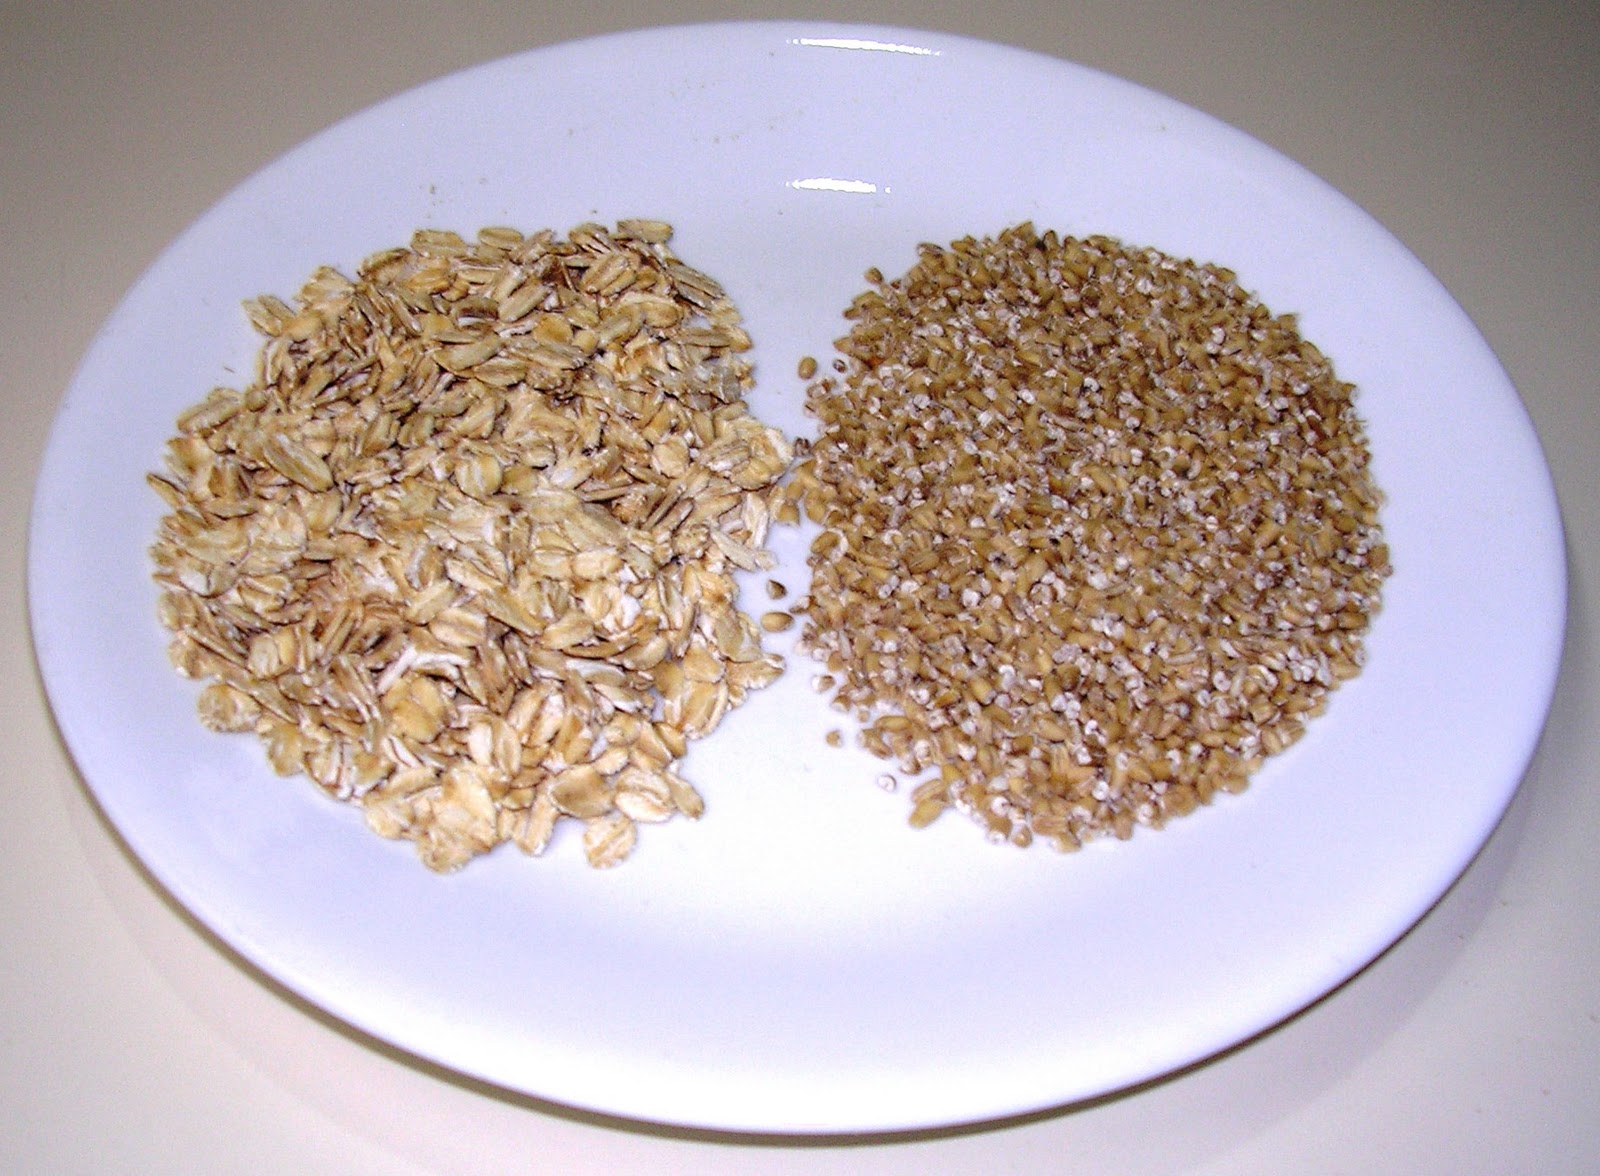 How do steel cut oats differ from rolled oats (old fashioned oats)?